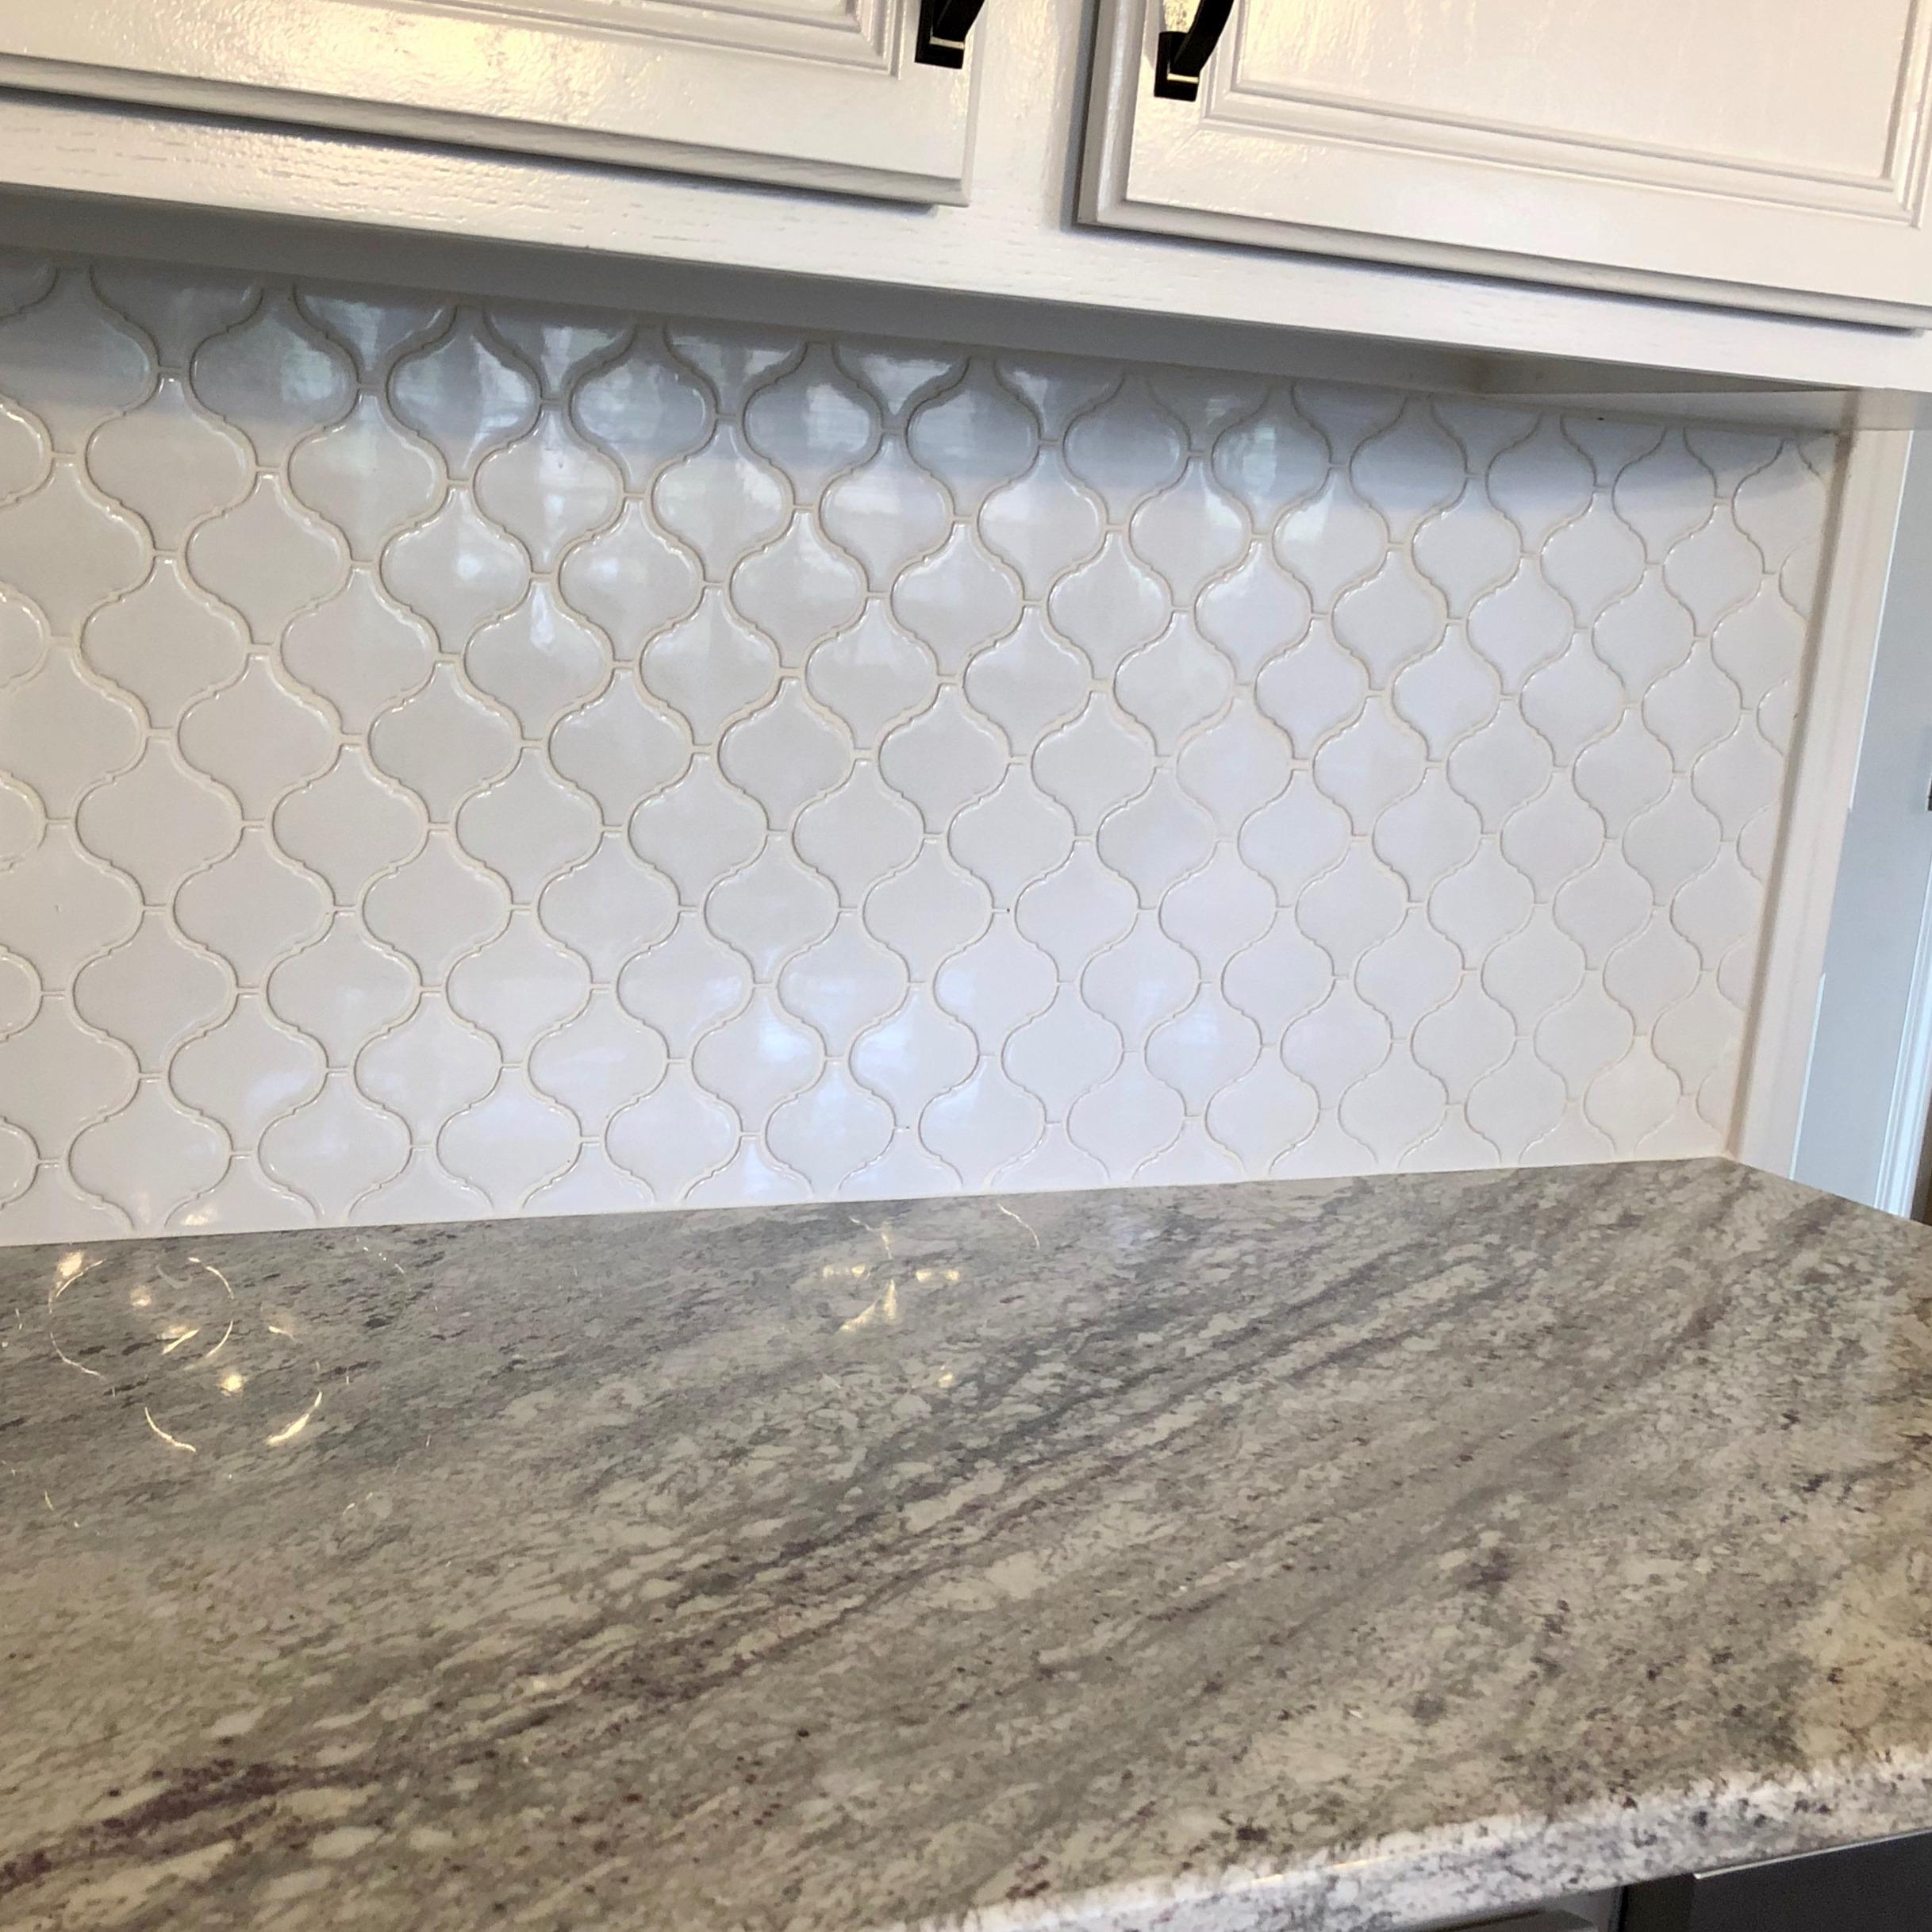 Betts designstile installation raleighbathroom remodelcontractor betts designs llc provides tile backsplash installation services in raleigh estimates and design consultations are available by appointment today dailygadgetfo Images